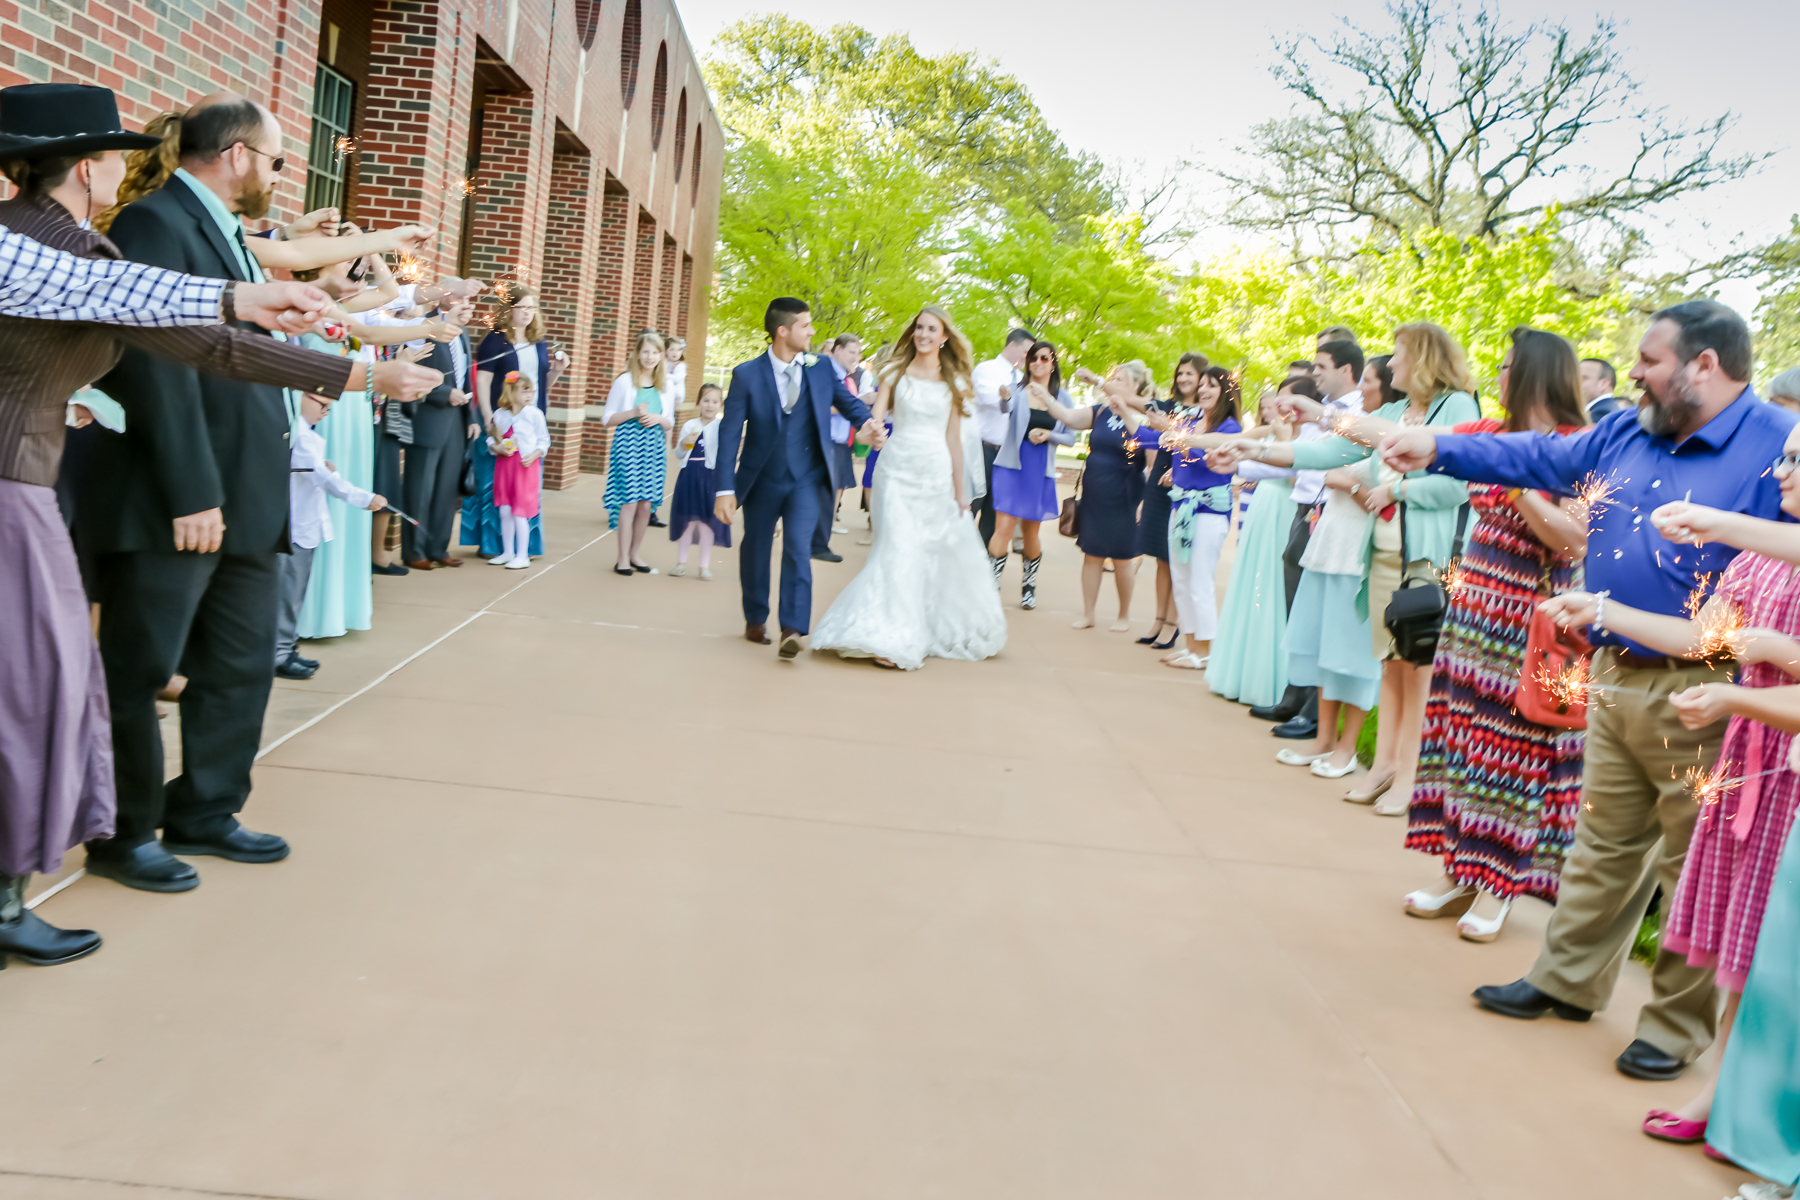 stillwater-wedding-photography-1-4.jpg